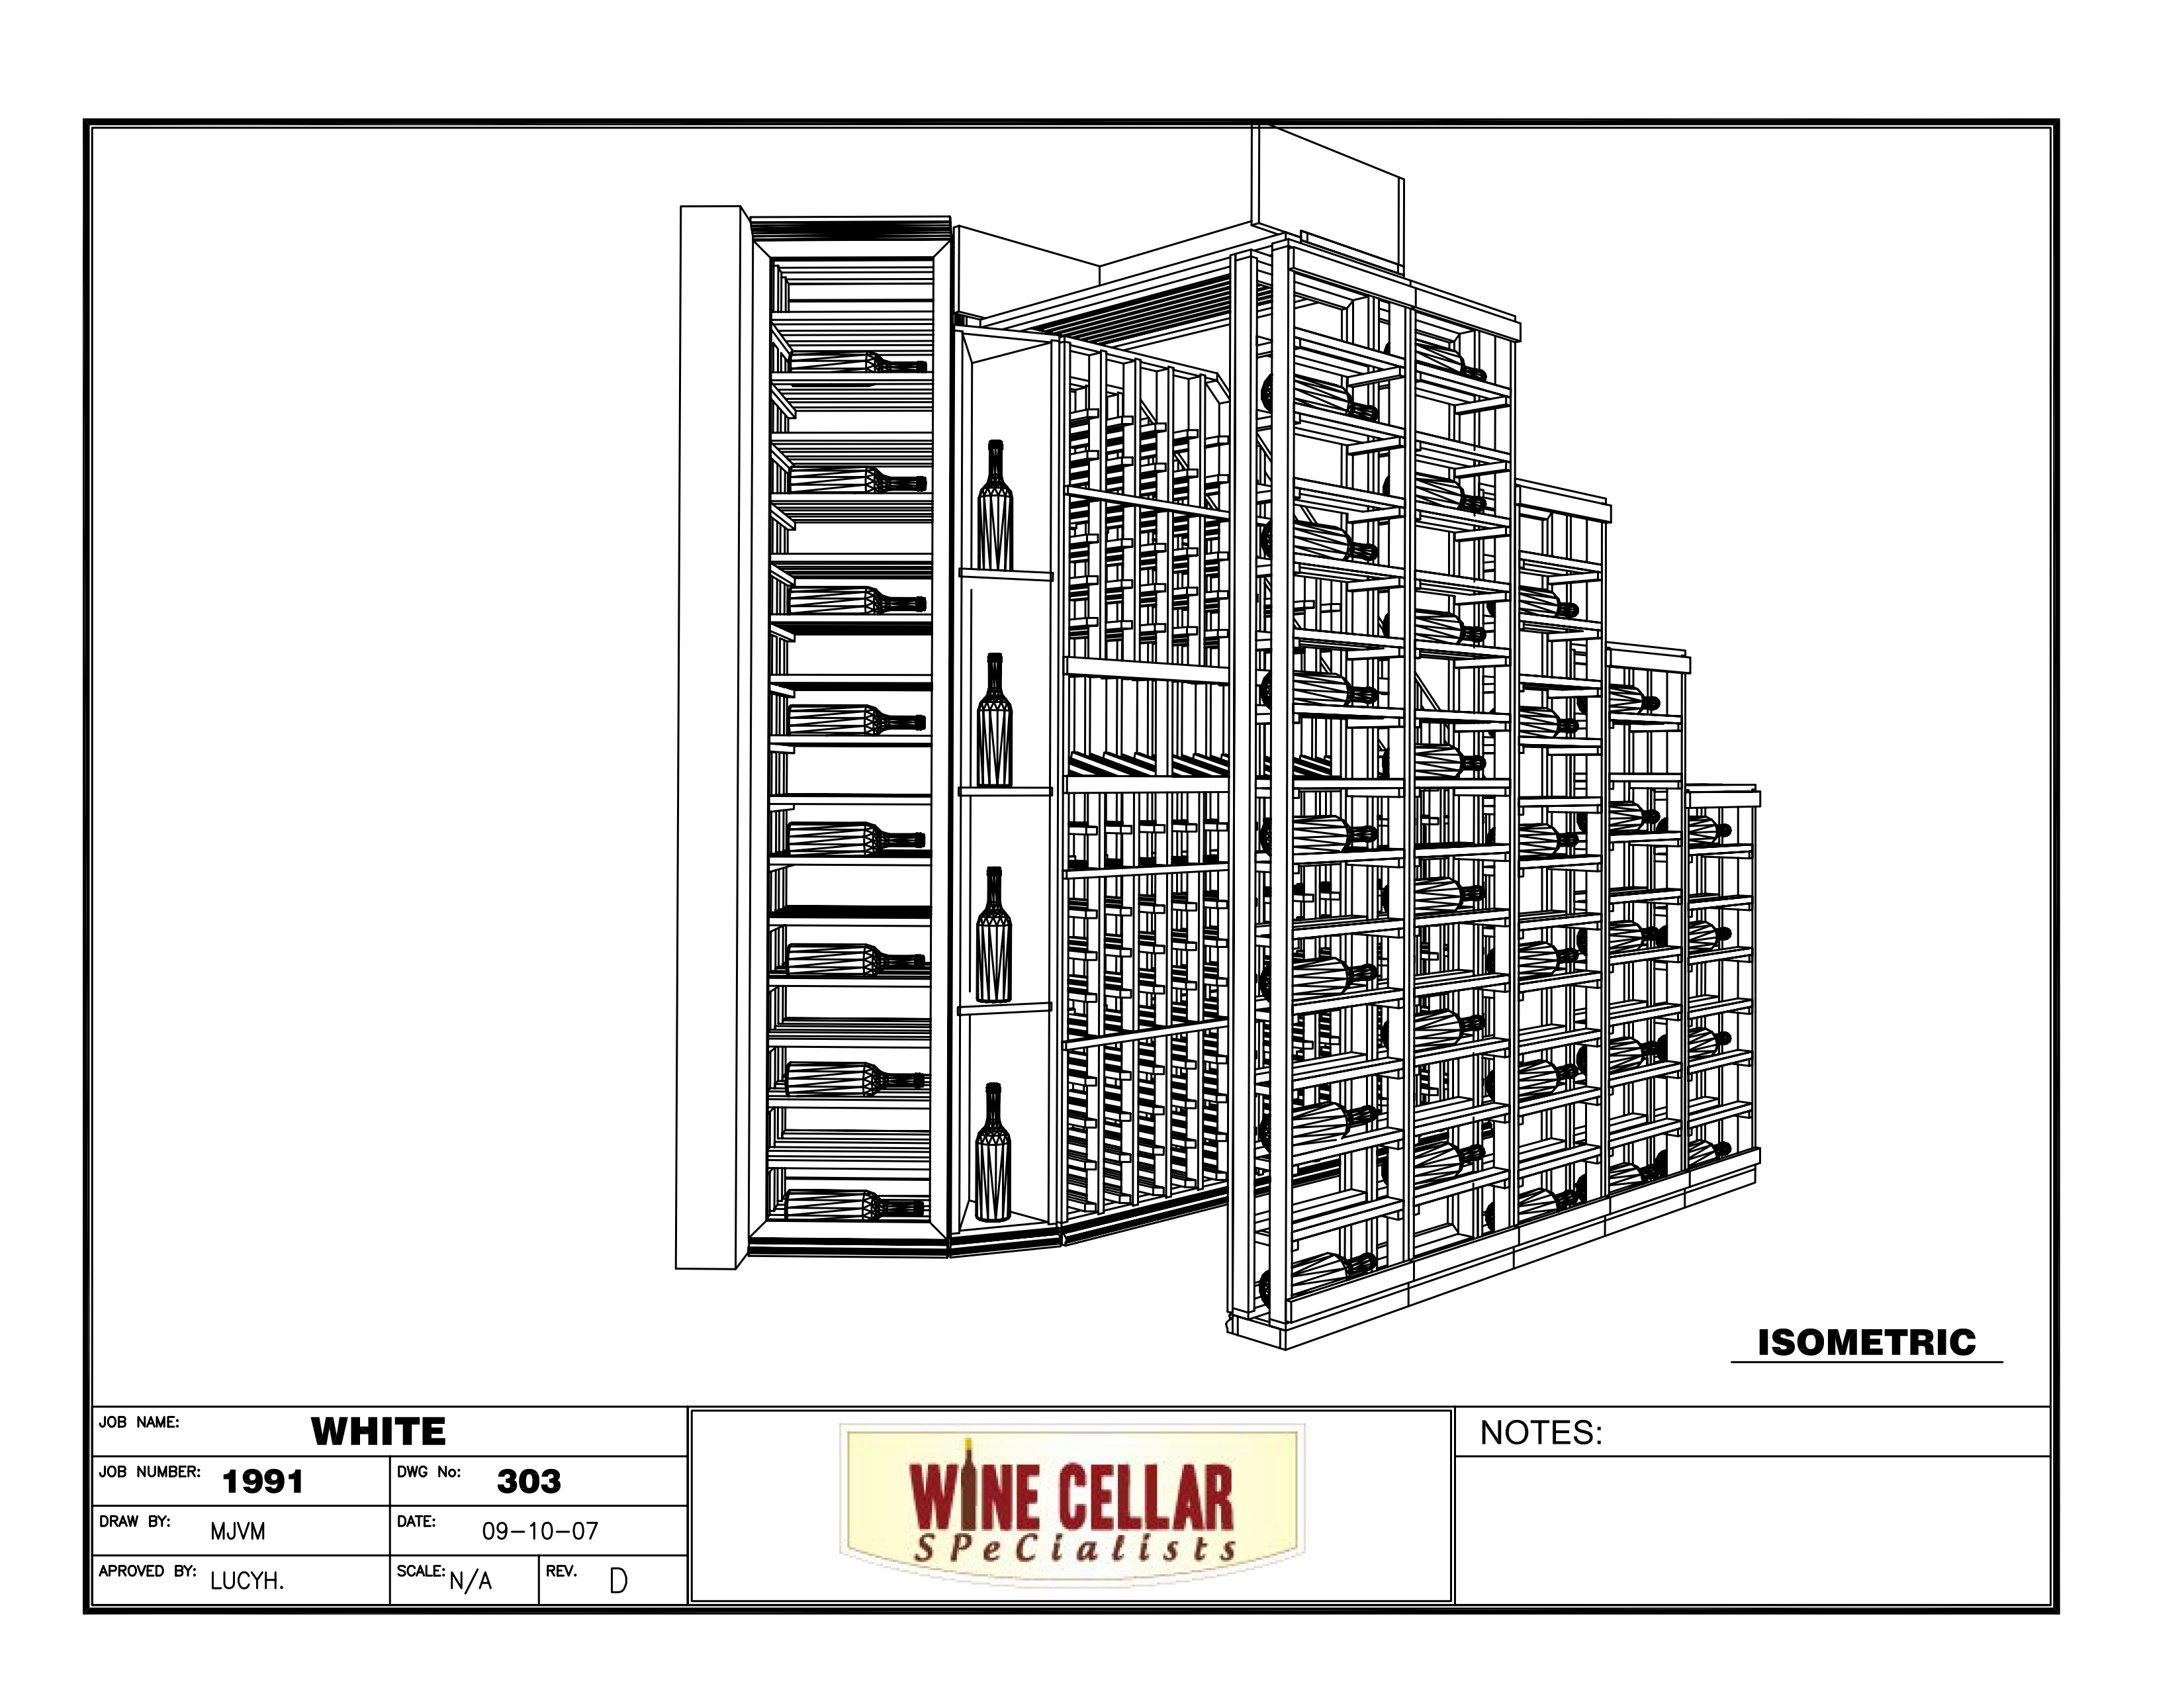 Basement Stair Designs Plans custom wine cellars chicago under stairs 3d drawing. get your free